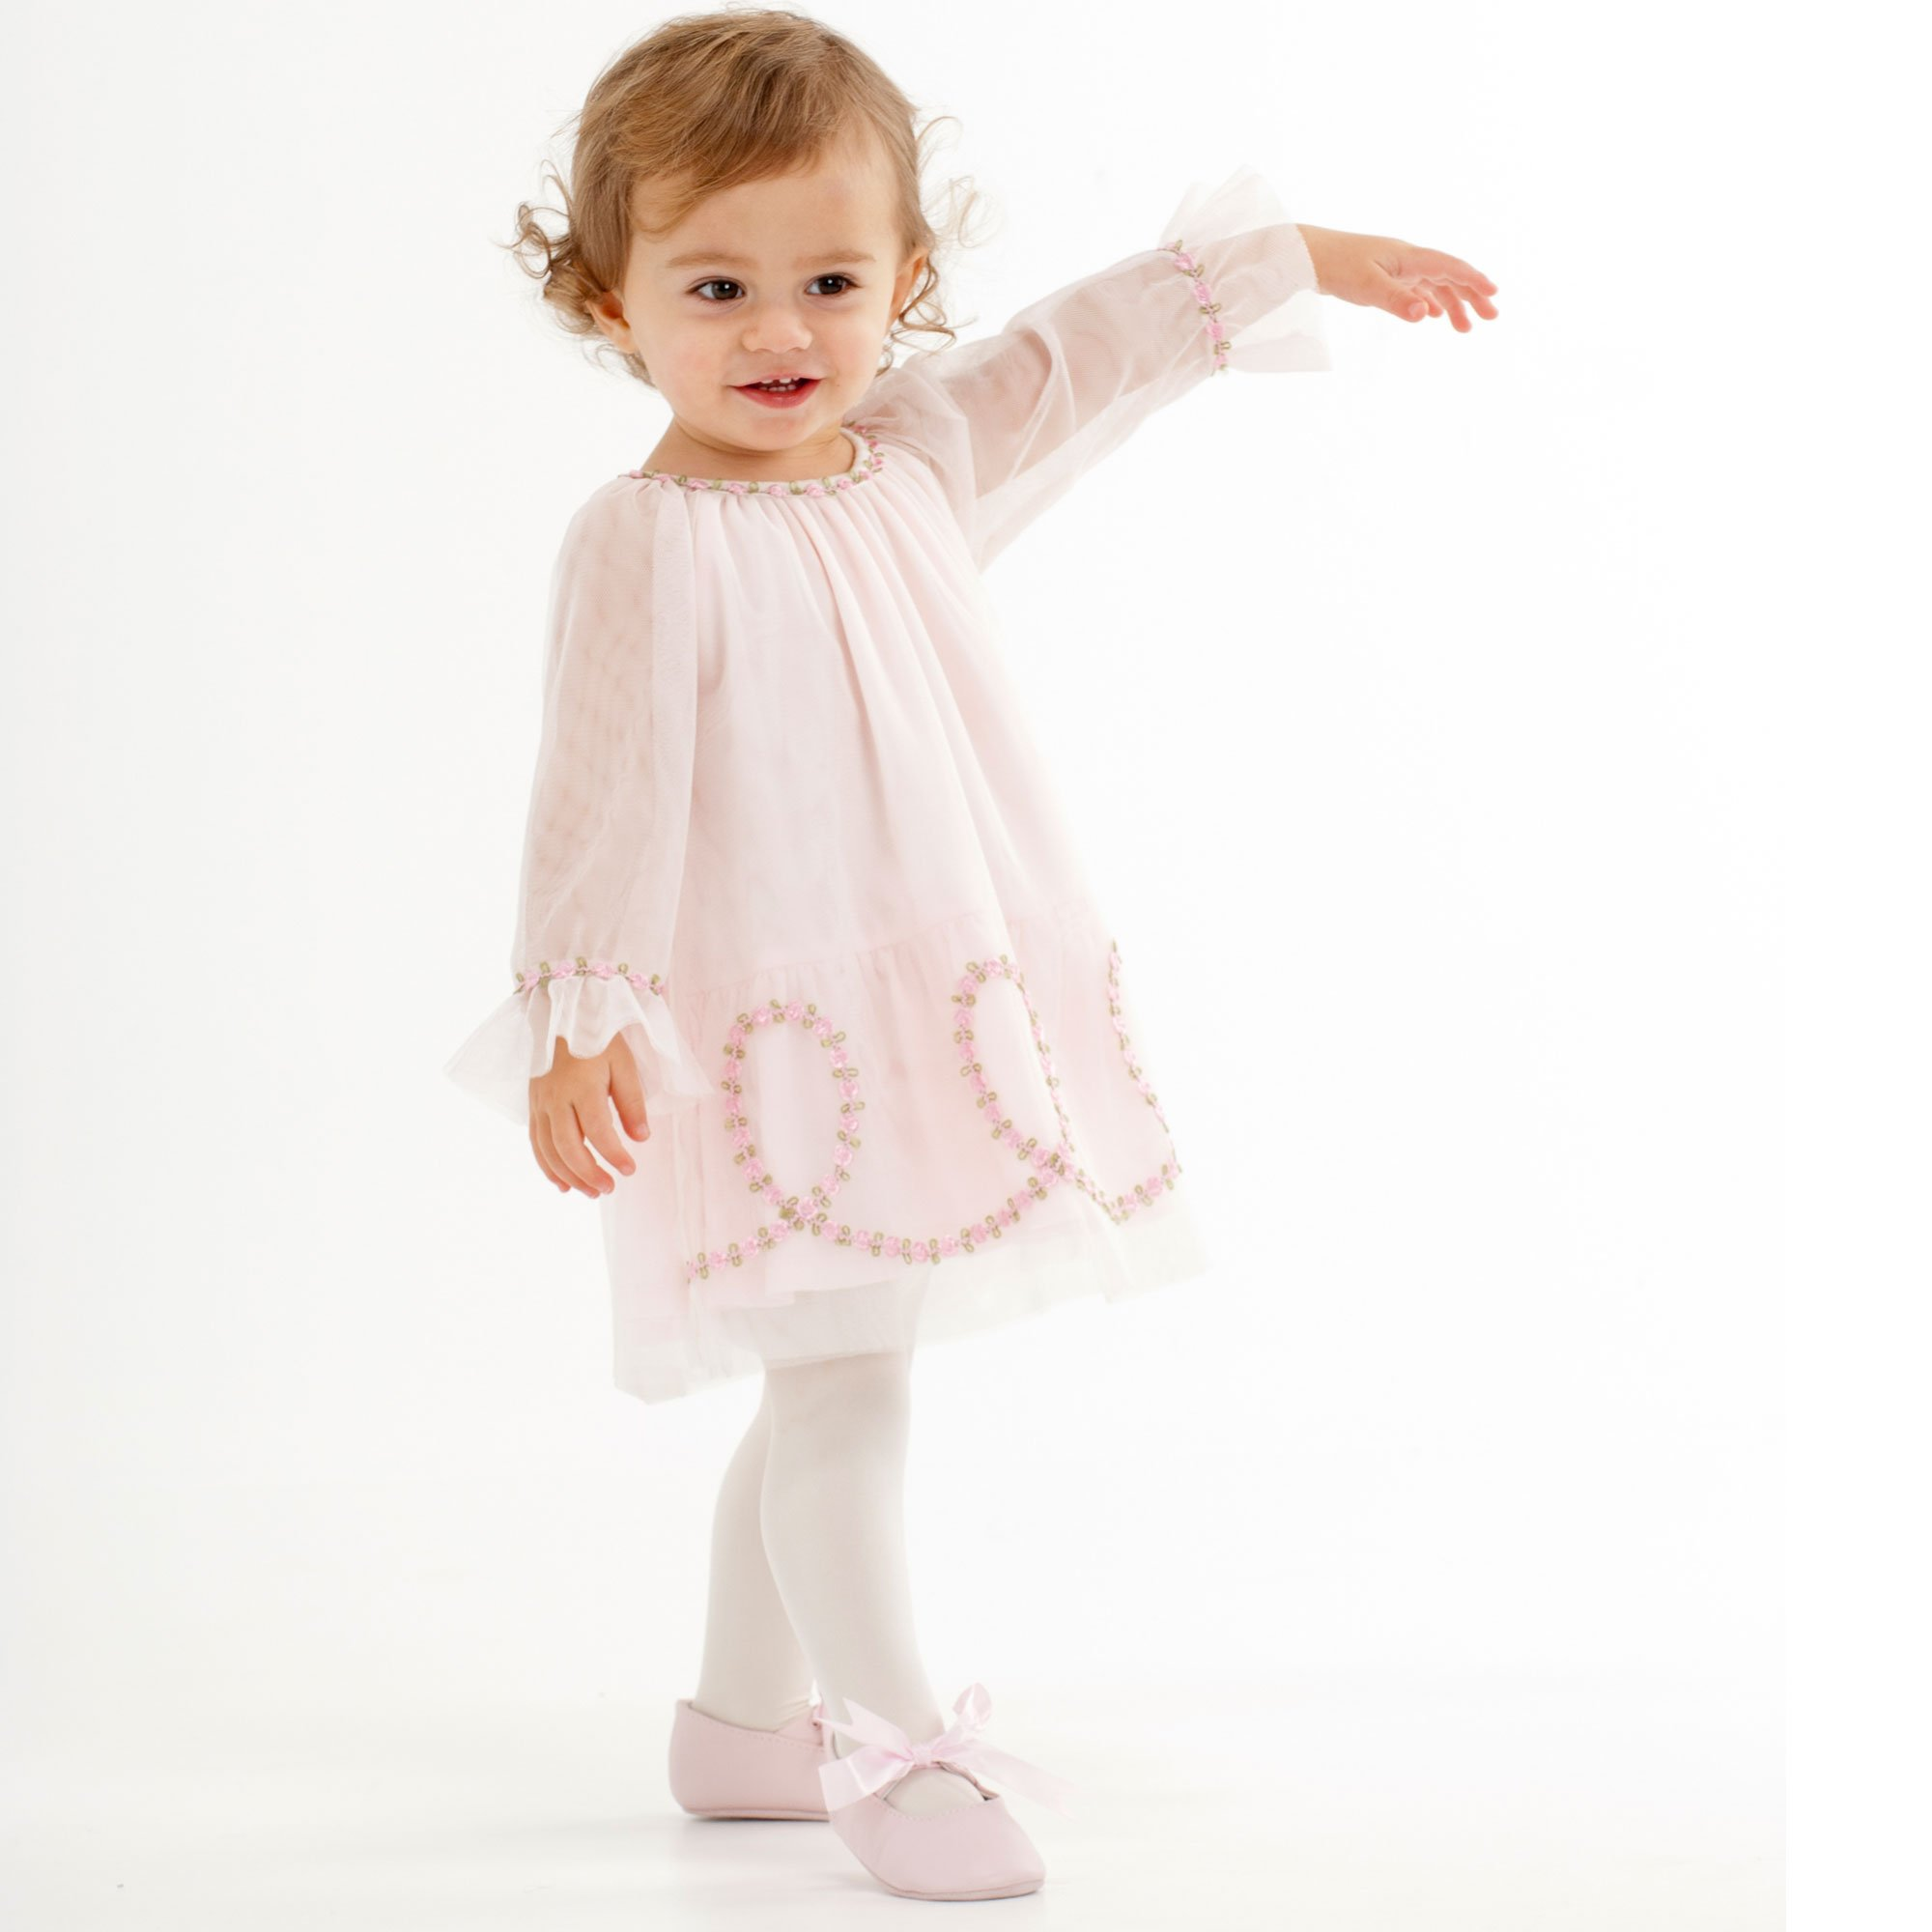 Valentine s Day Baby and Toddler Clothes dresses rompers newborn